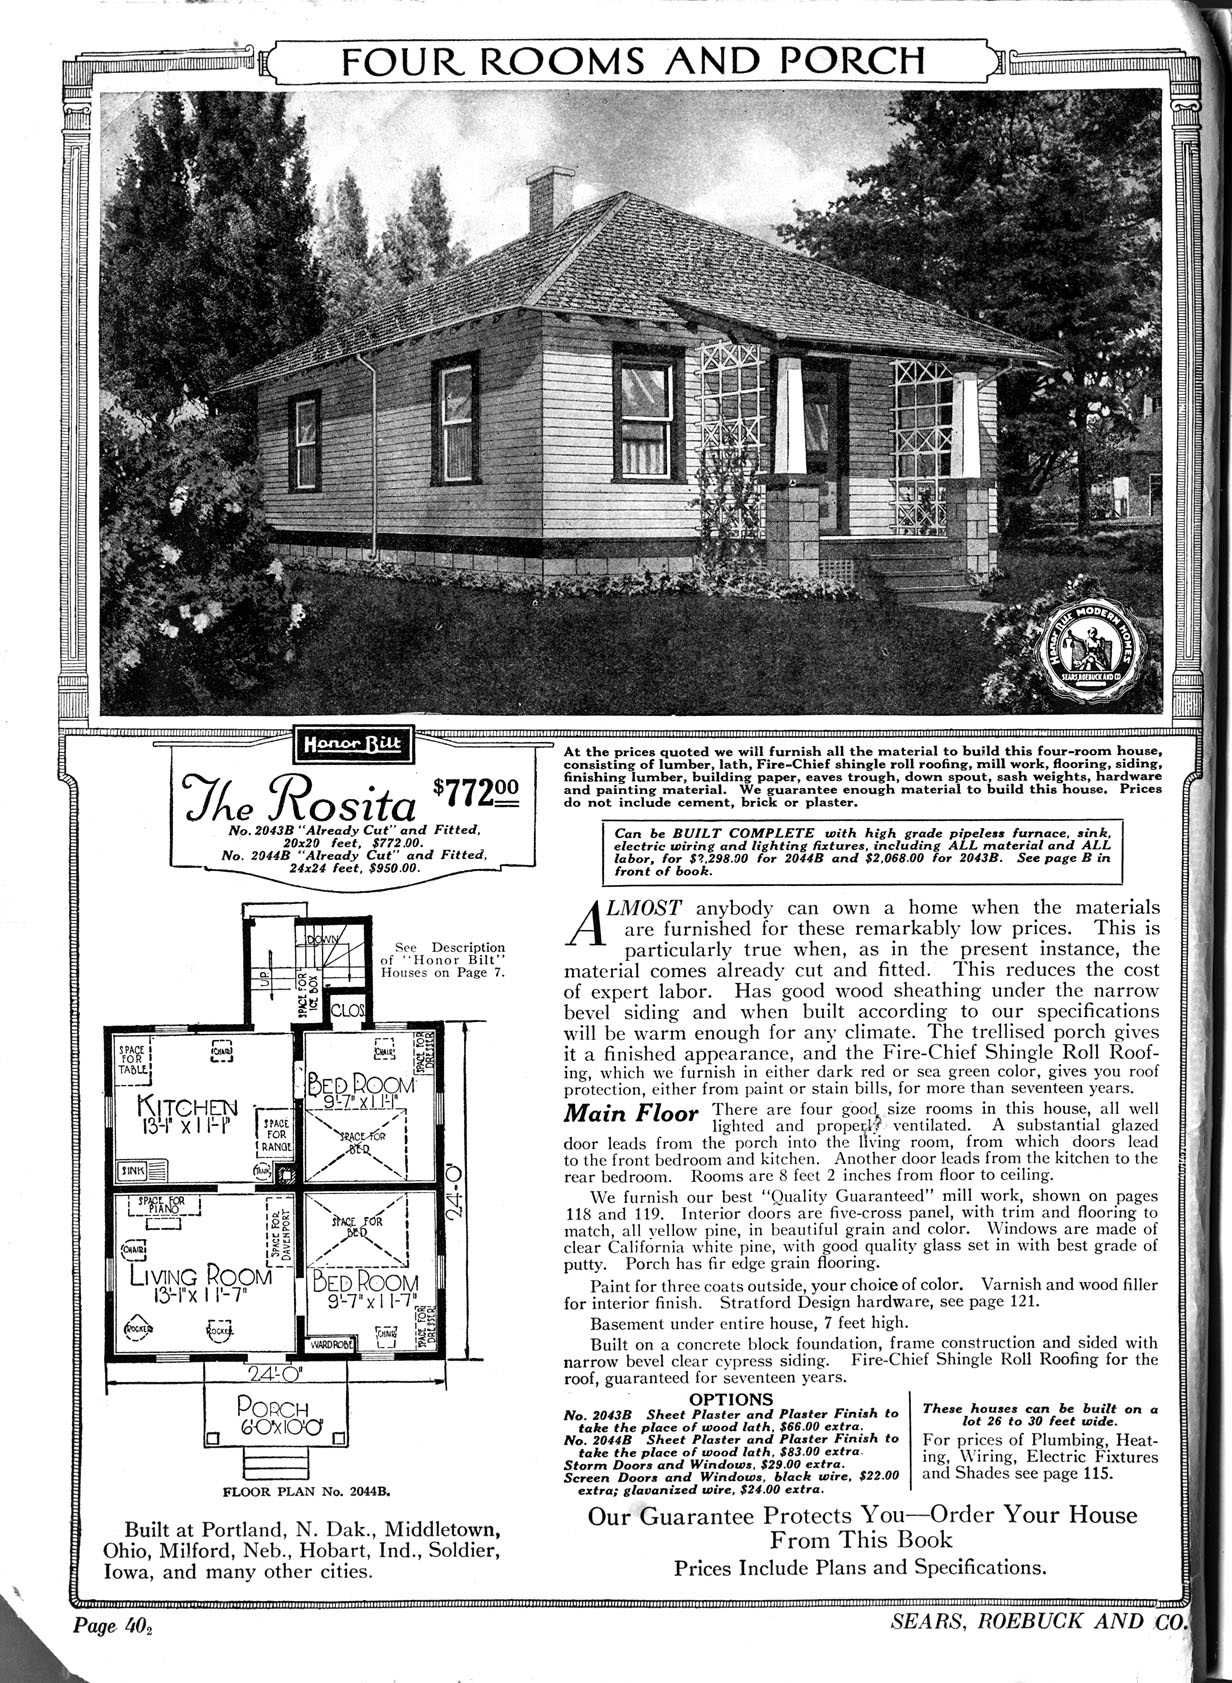 The Rosita Sears Quot Honor Bilt Quot Kit House 1922 Really